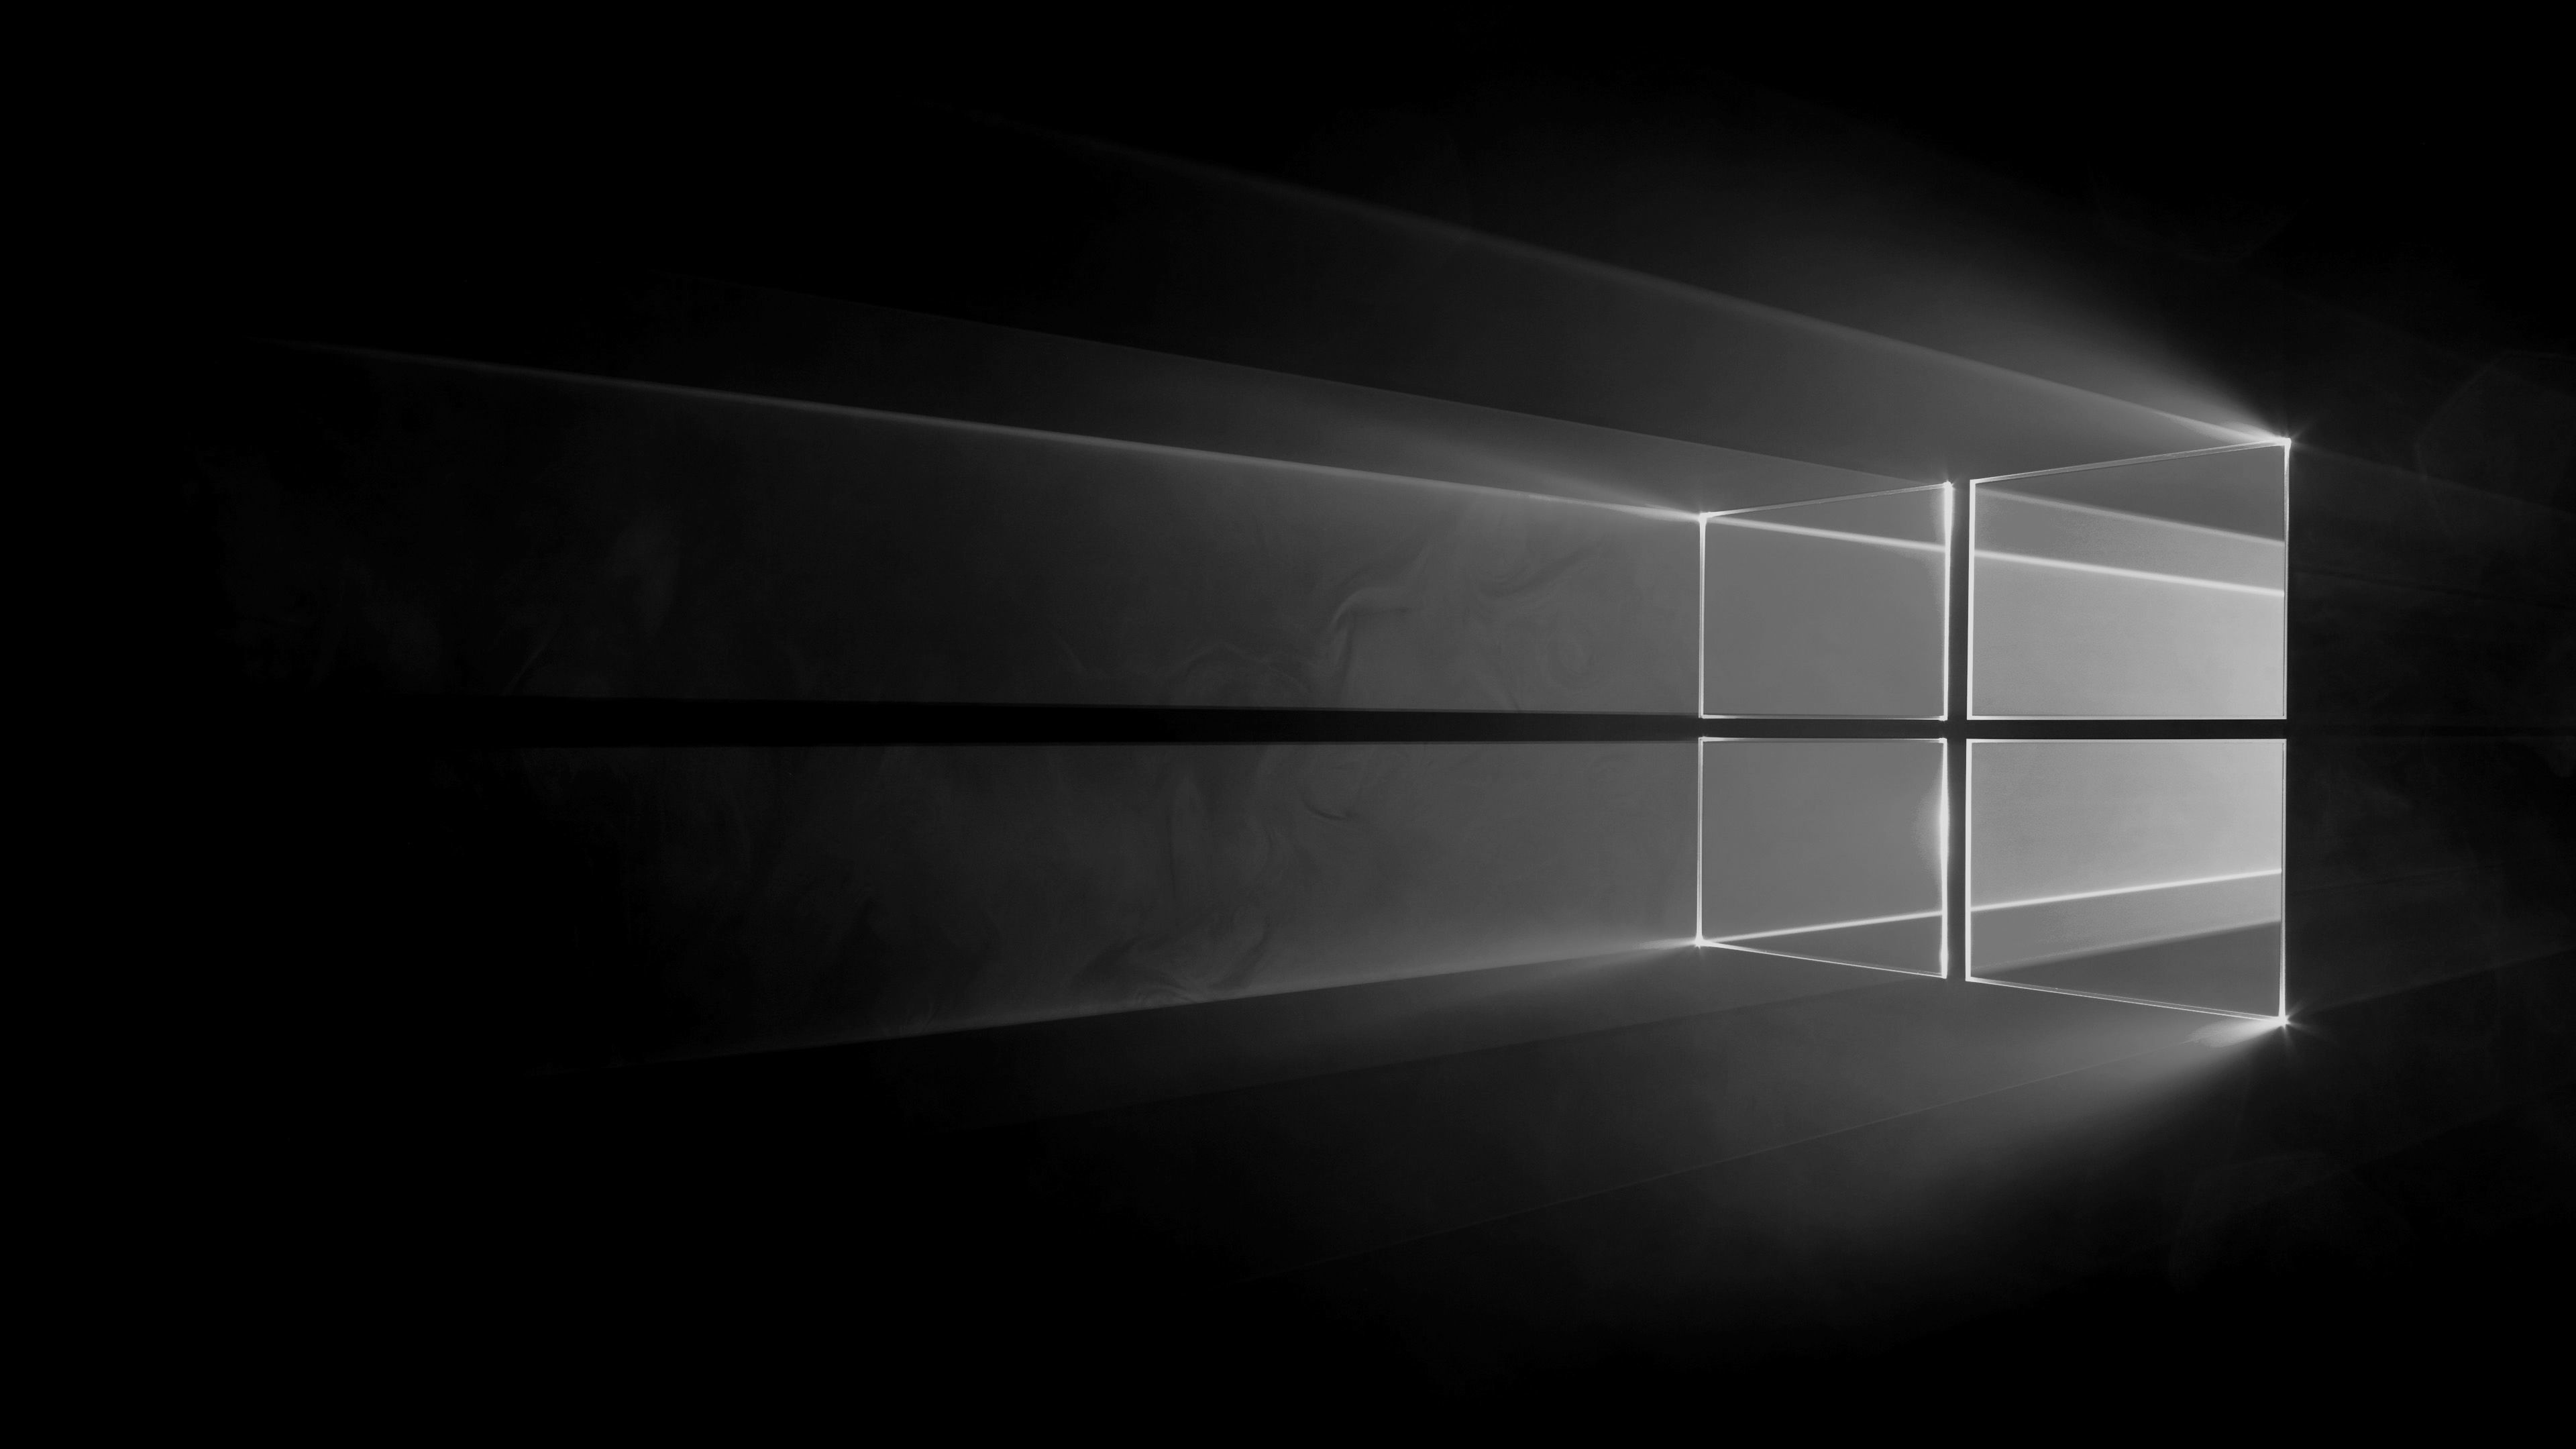 Black Wallpaper Windows 10 (61+ images) Wallpaper